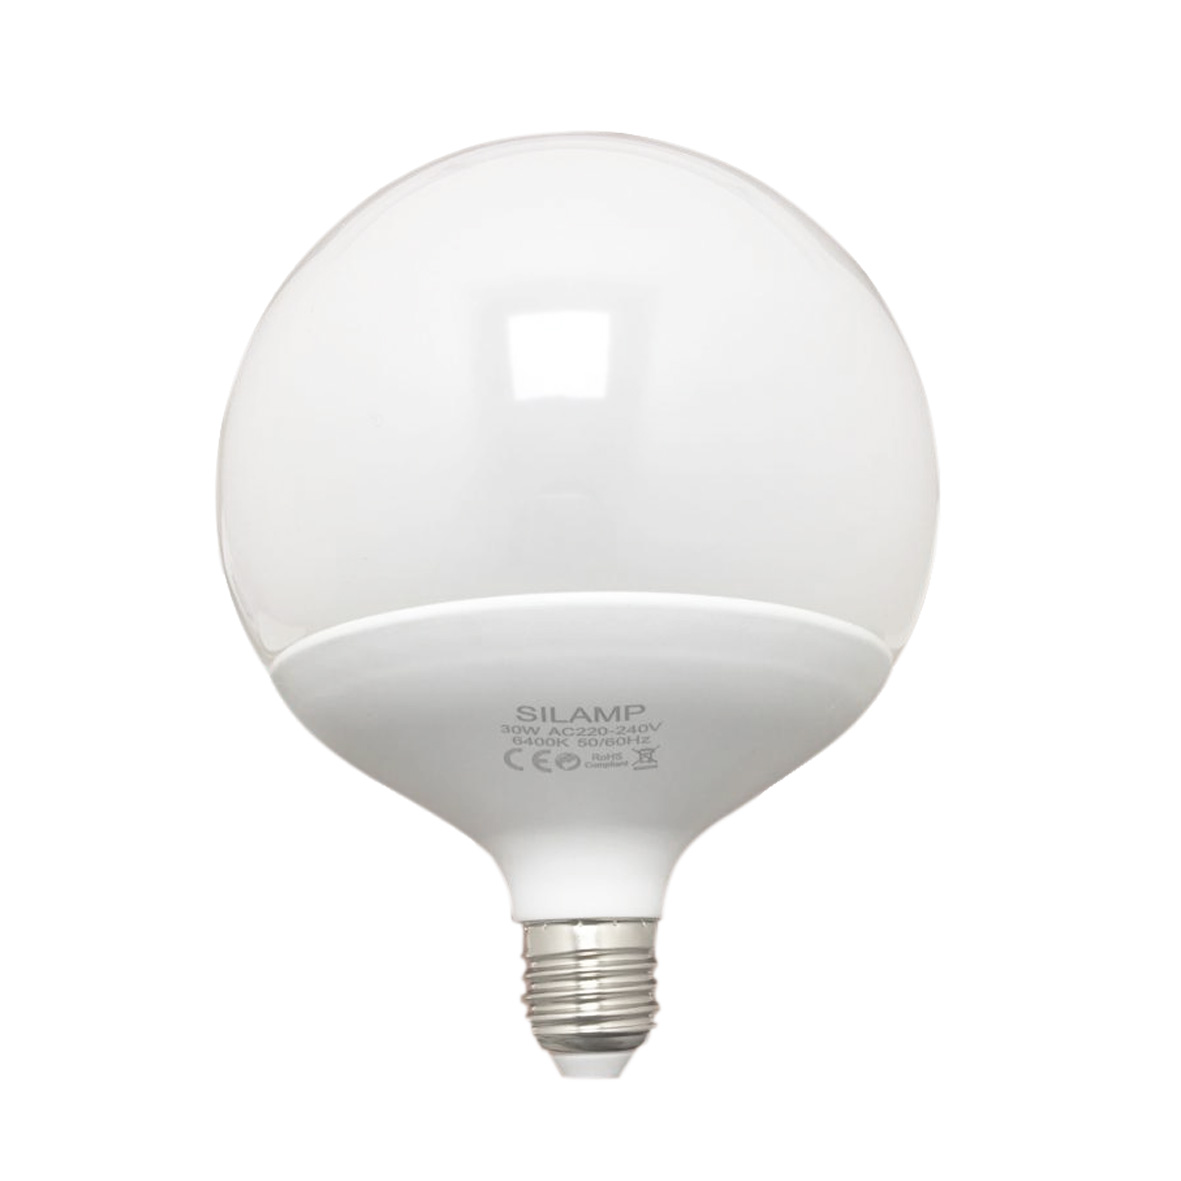 LED light bulb 25W G140 big E27 screw-in Globe L101-G140-25W